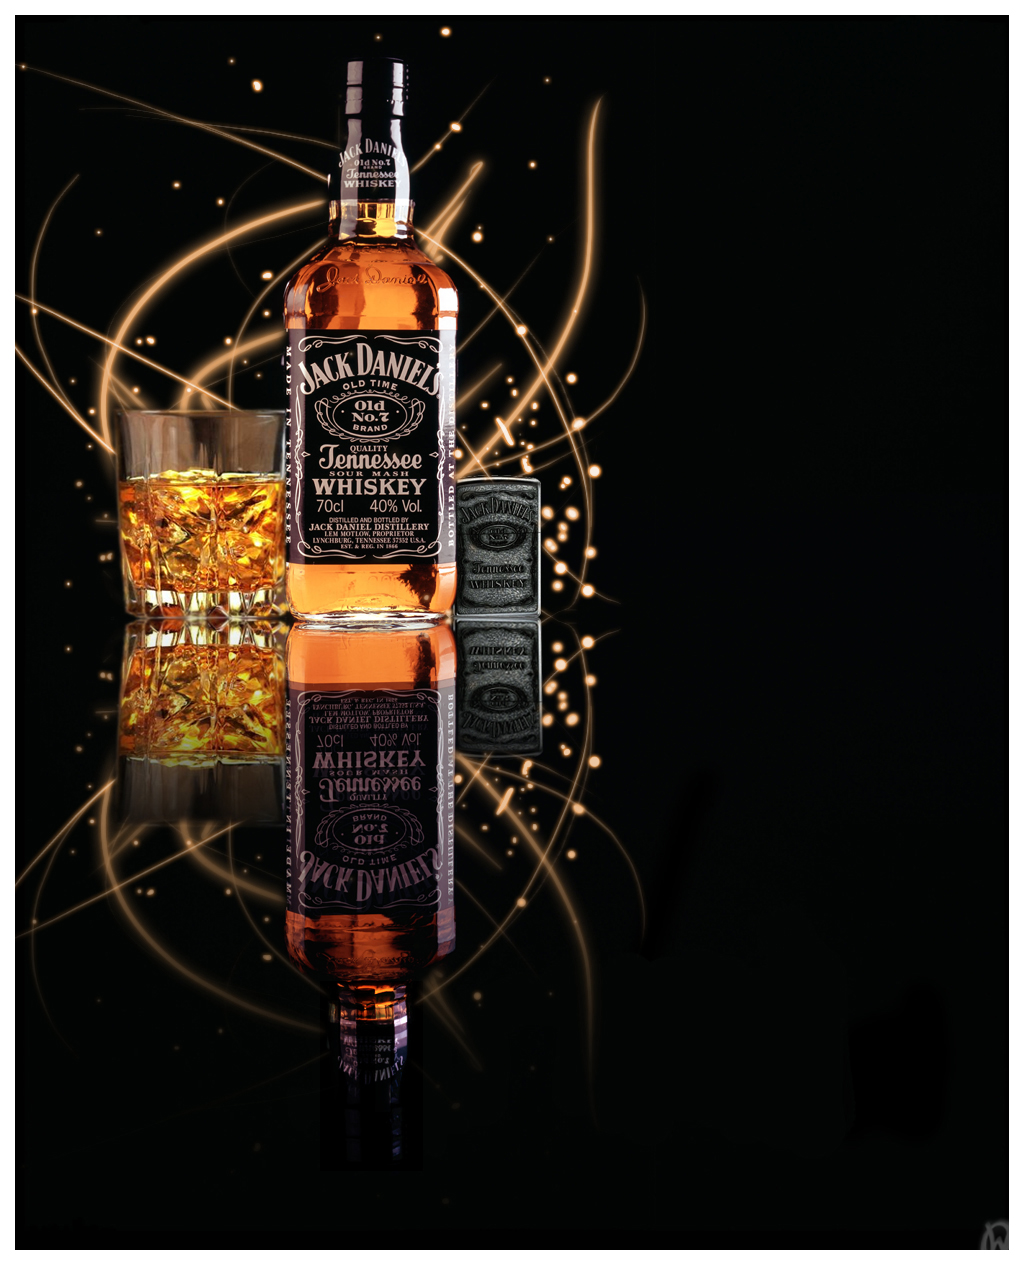 New wallpaper 2011 jack daniels wallpaper about jack daniel jack daniels wallpaper about jack daniel voltagebd Images